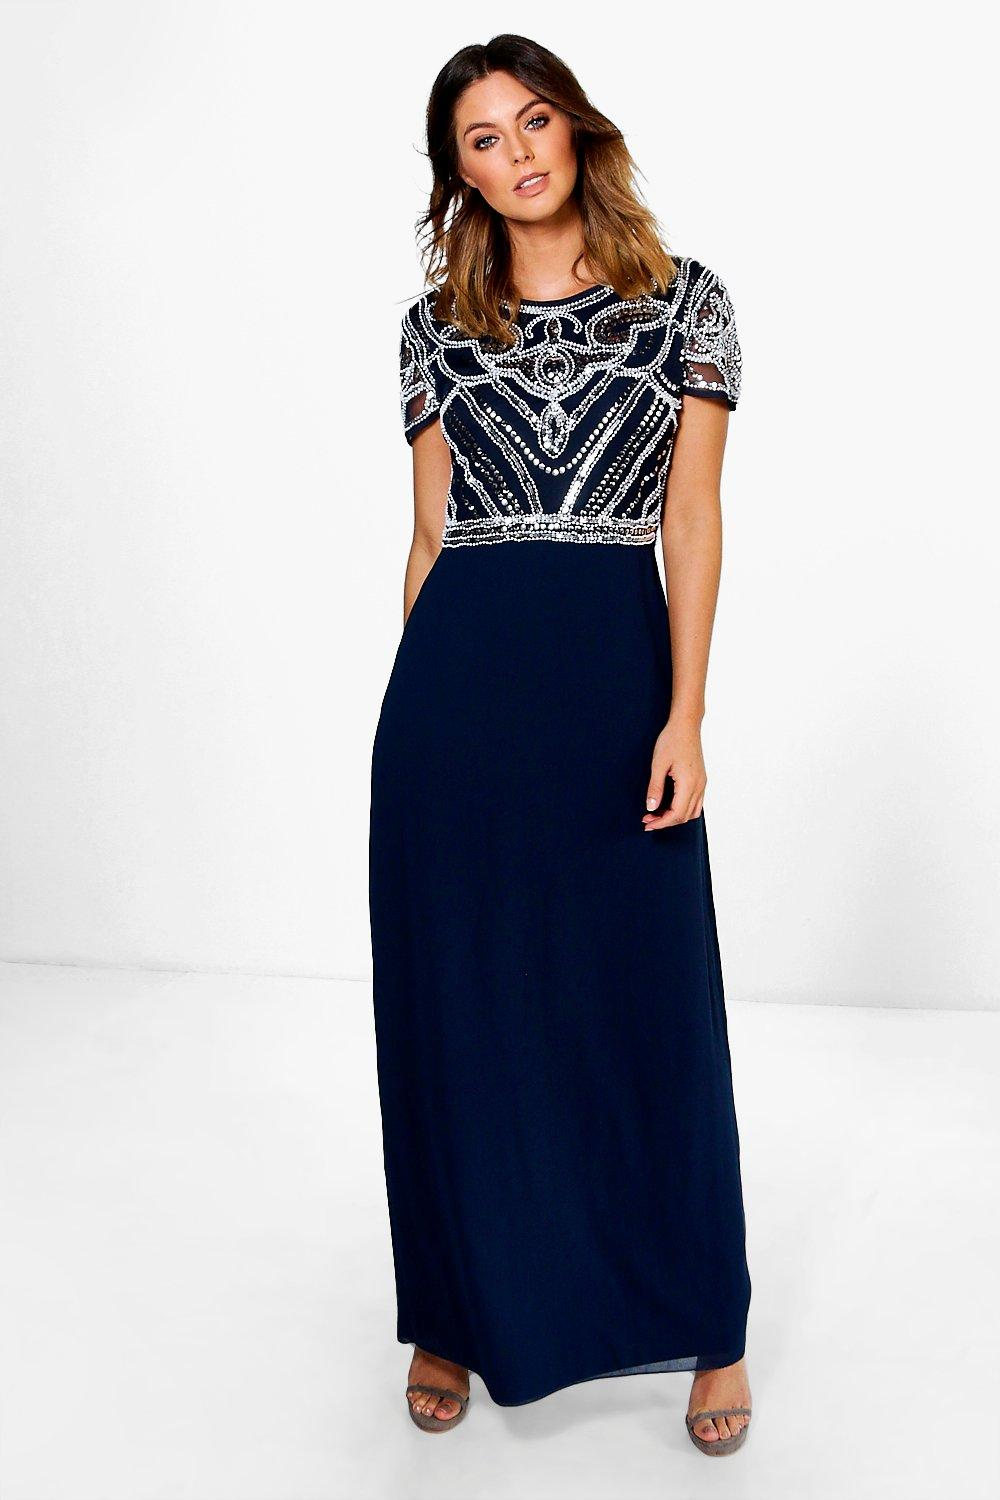 Shop for women's casual dresses, cocktail dresses, formal dresses and special occasion dresses available in missy, plus and petites sizes at hereufilbk.gq